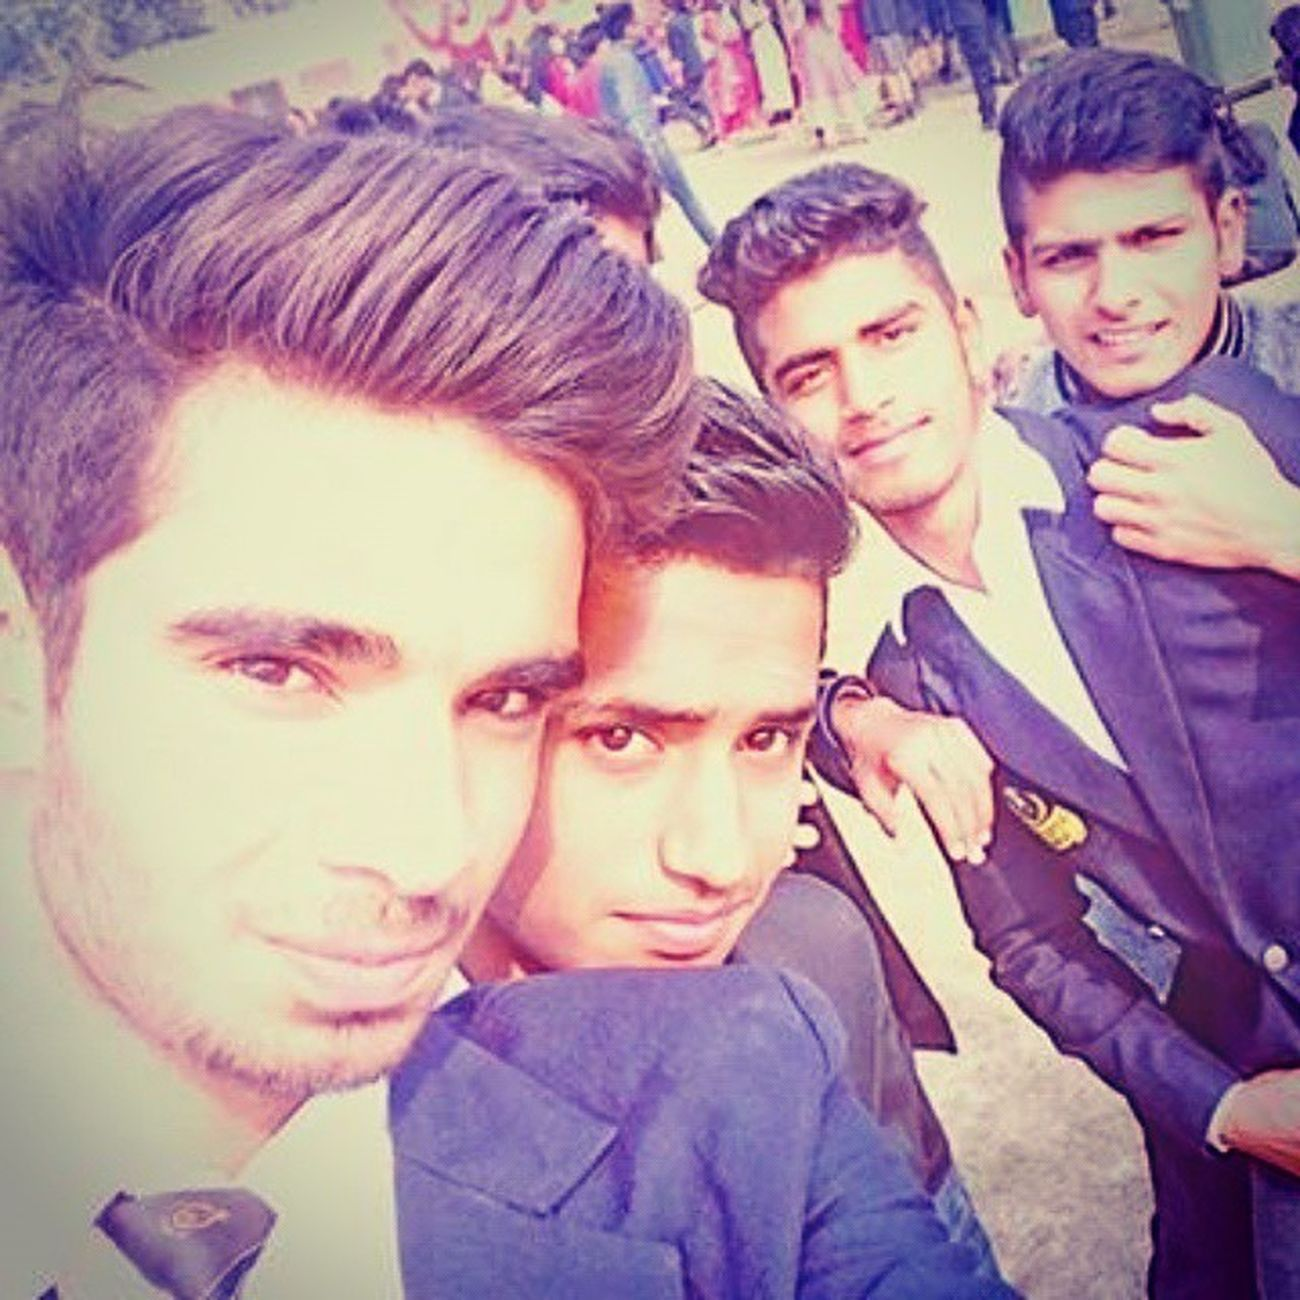 Brothers_forever 😋😋 Love_u_all 😘😘 Enjoyableday 😉😉 Cool_guys👌👌